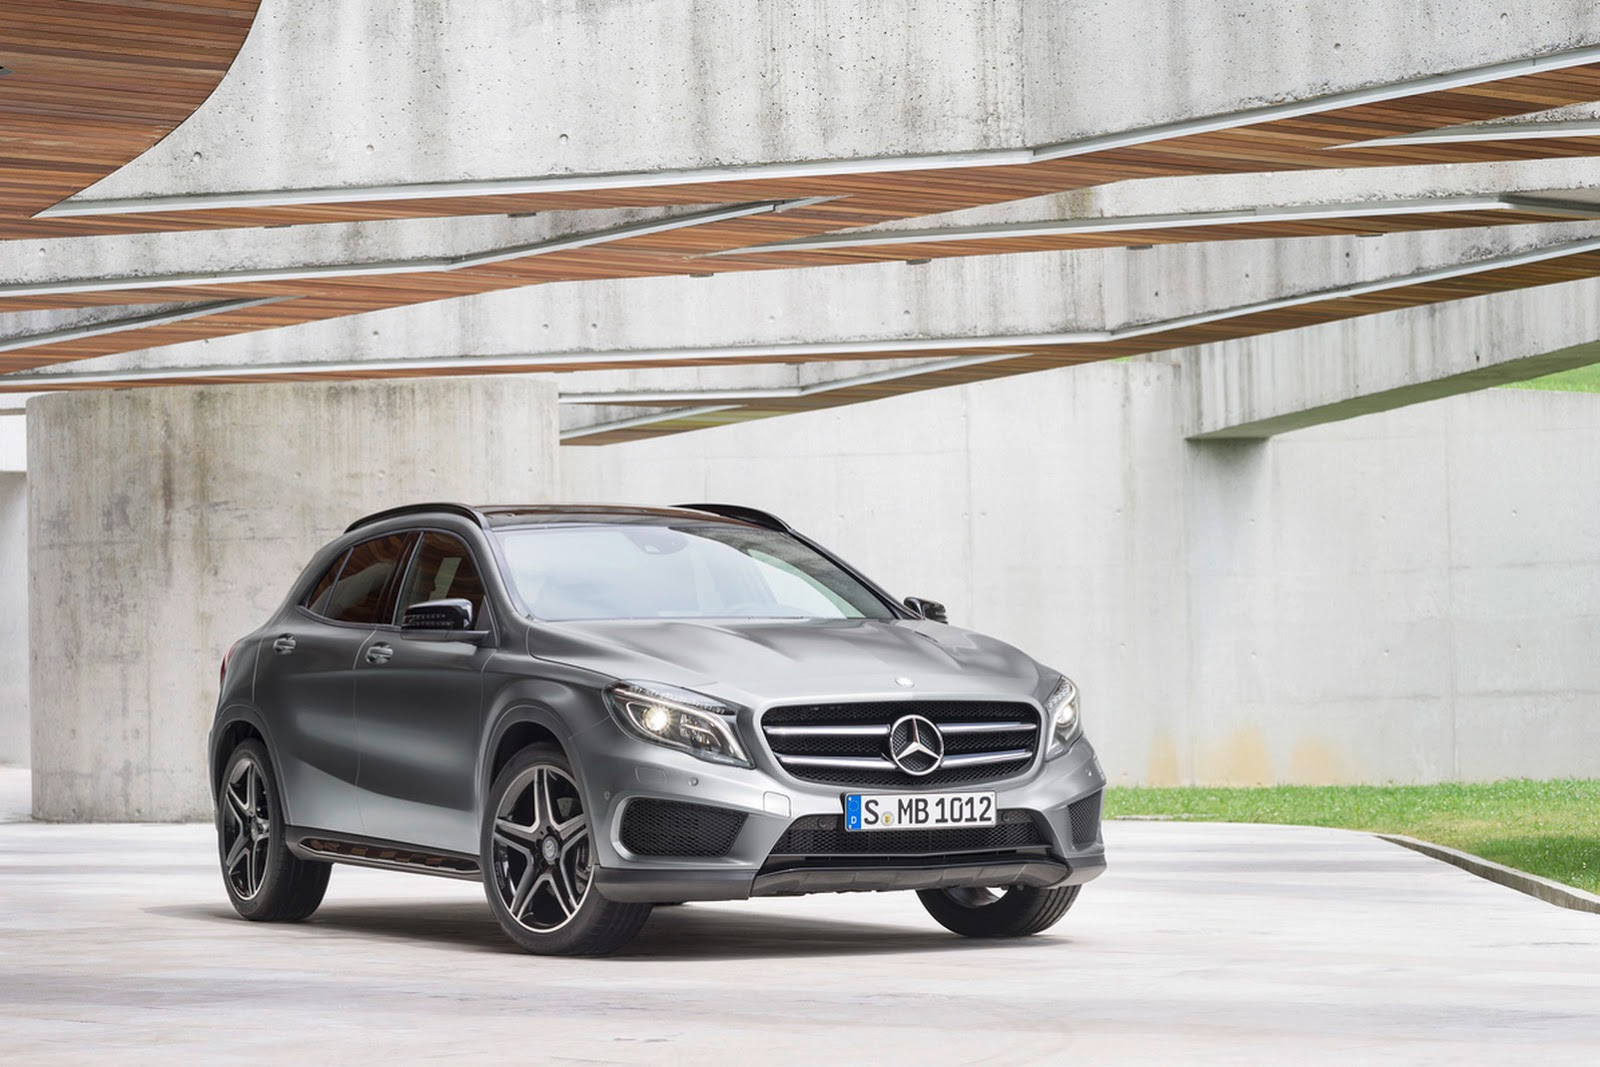 new 2015 mercedes gla compact suv from $31,300* in the u.s.